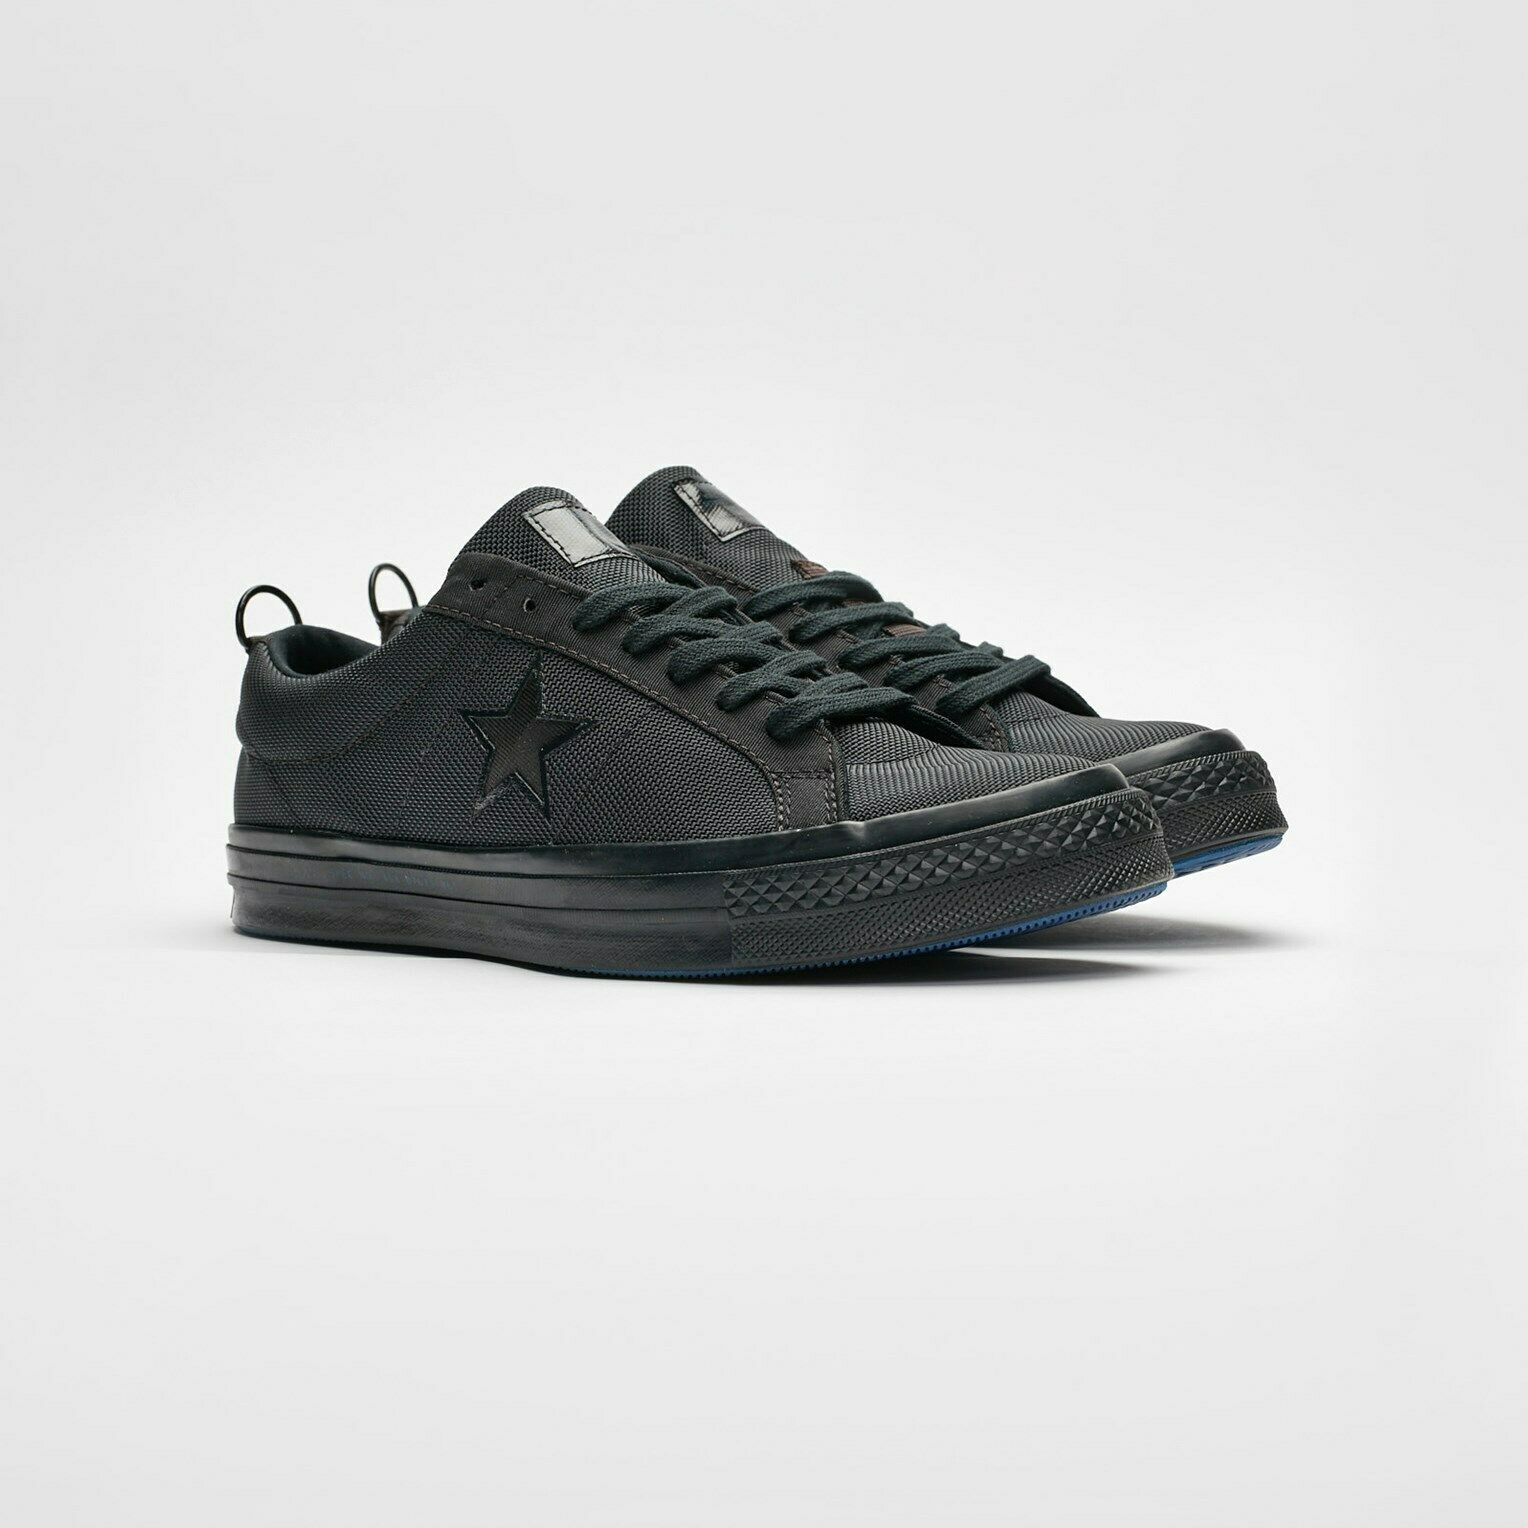 Converse One Star Ox Carhartt WIP Black